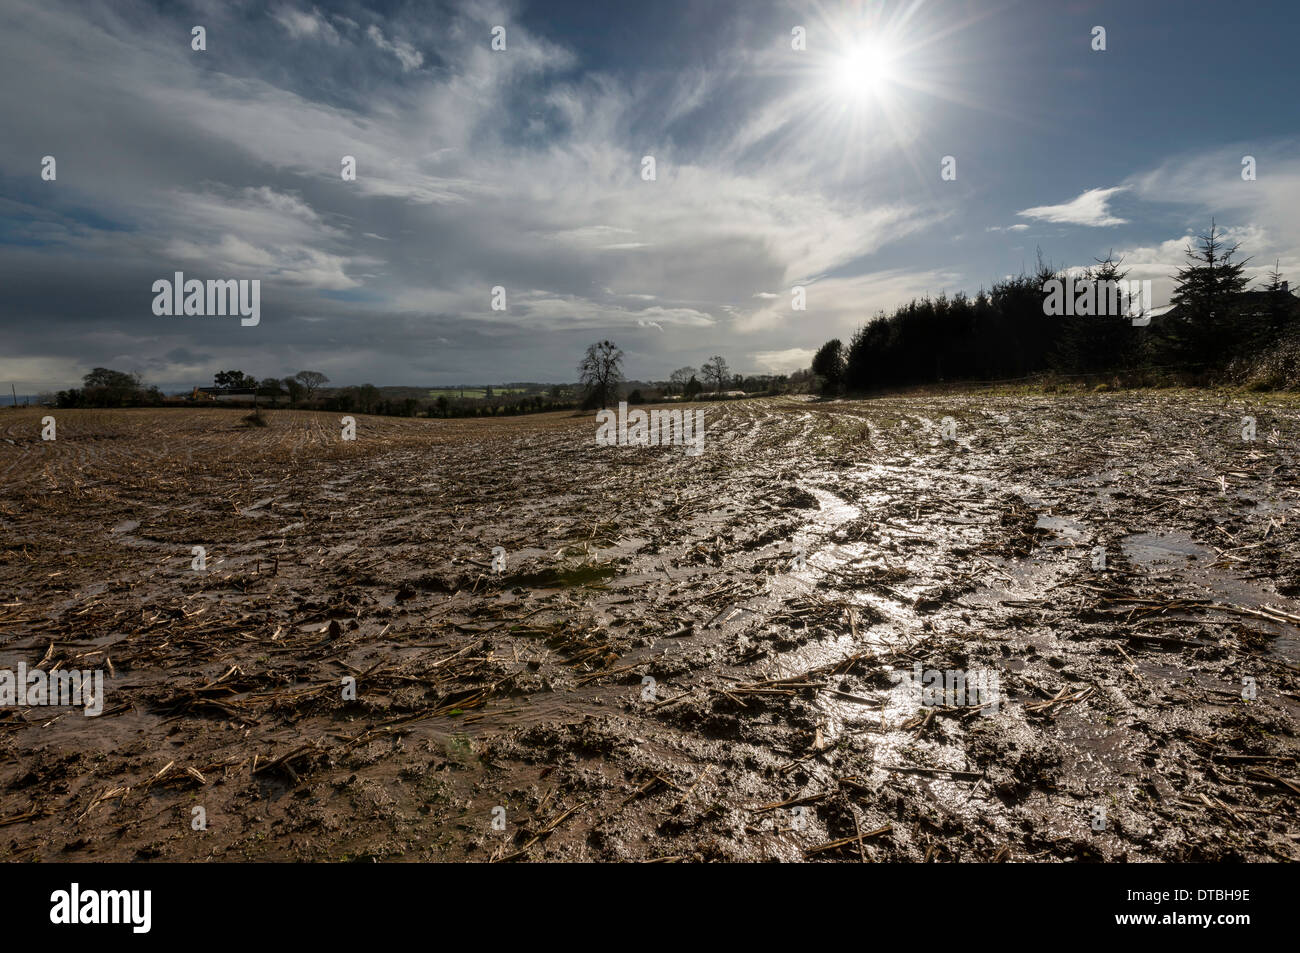 Saturated field in Gloucestershire England February 2014 after wettest winter on record - Stock Image